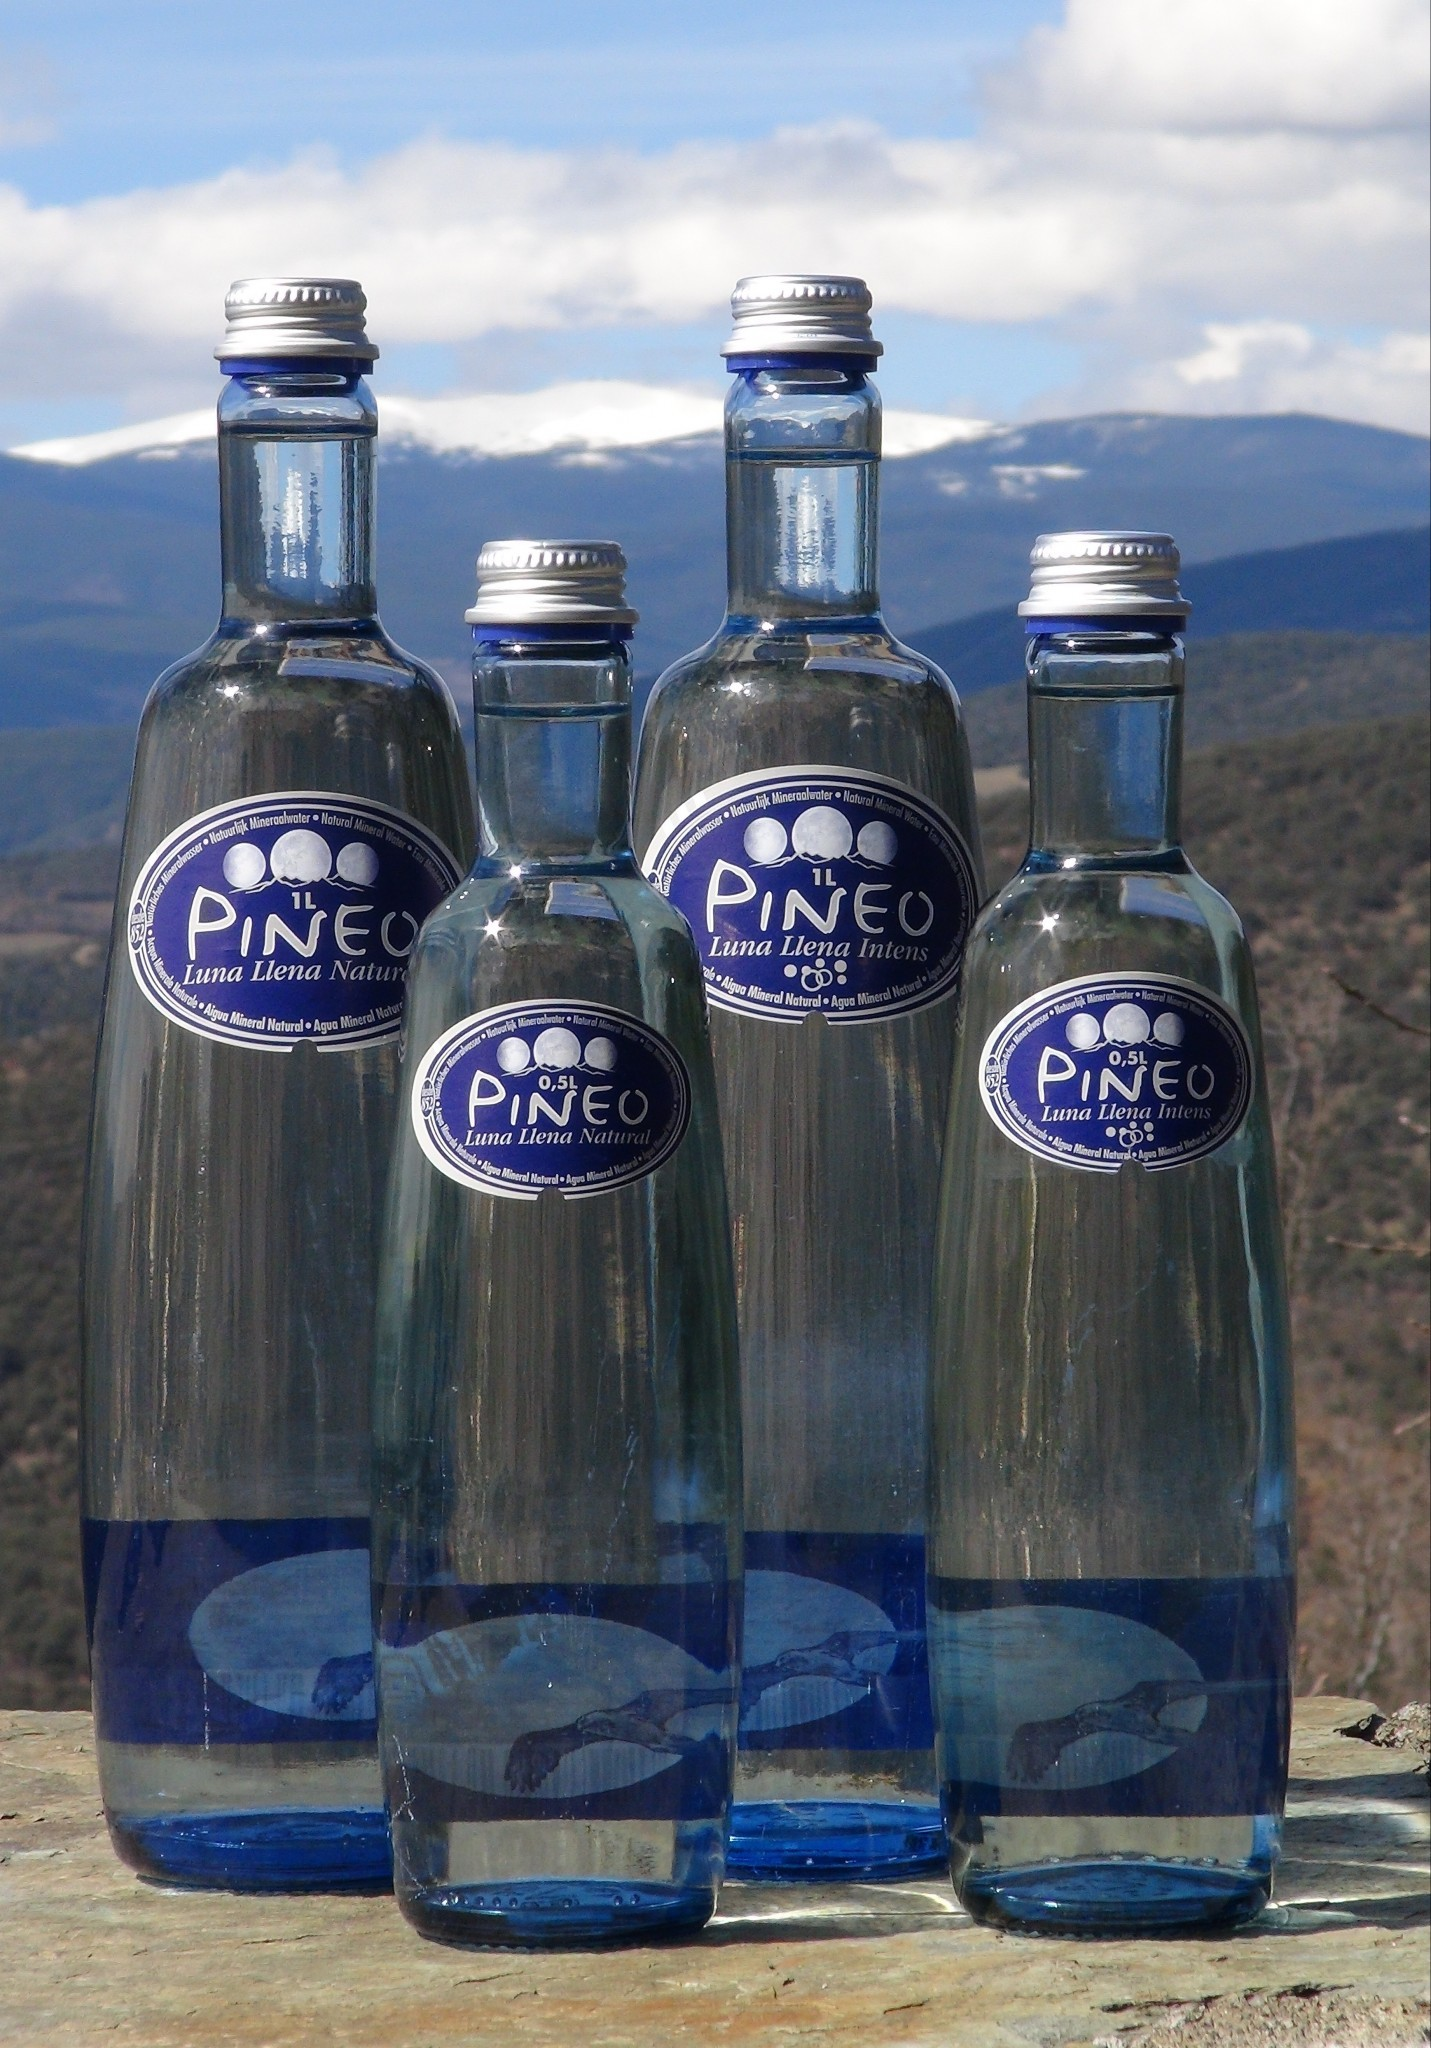 Pineo water range in 1 l glass bottles